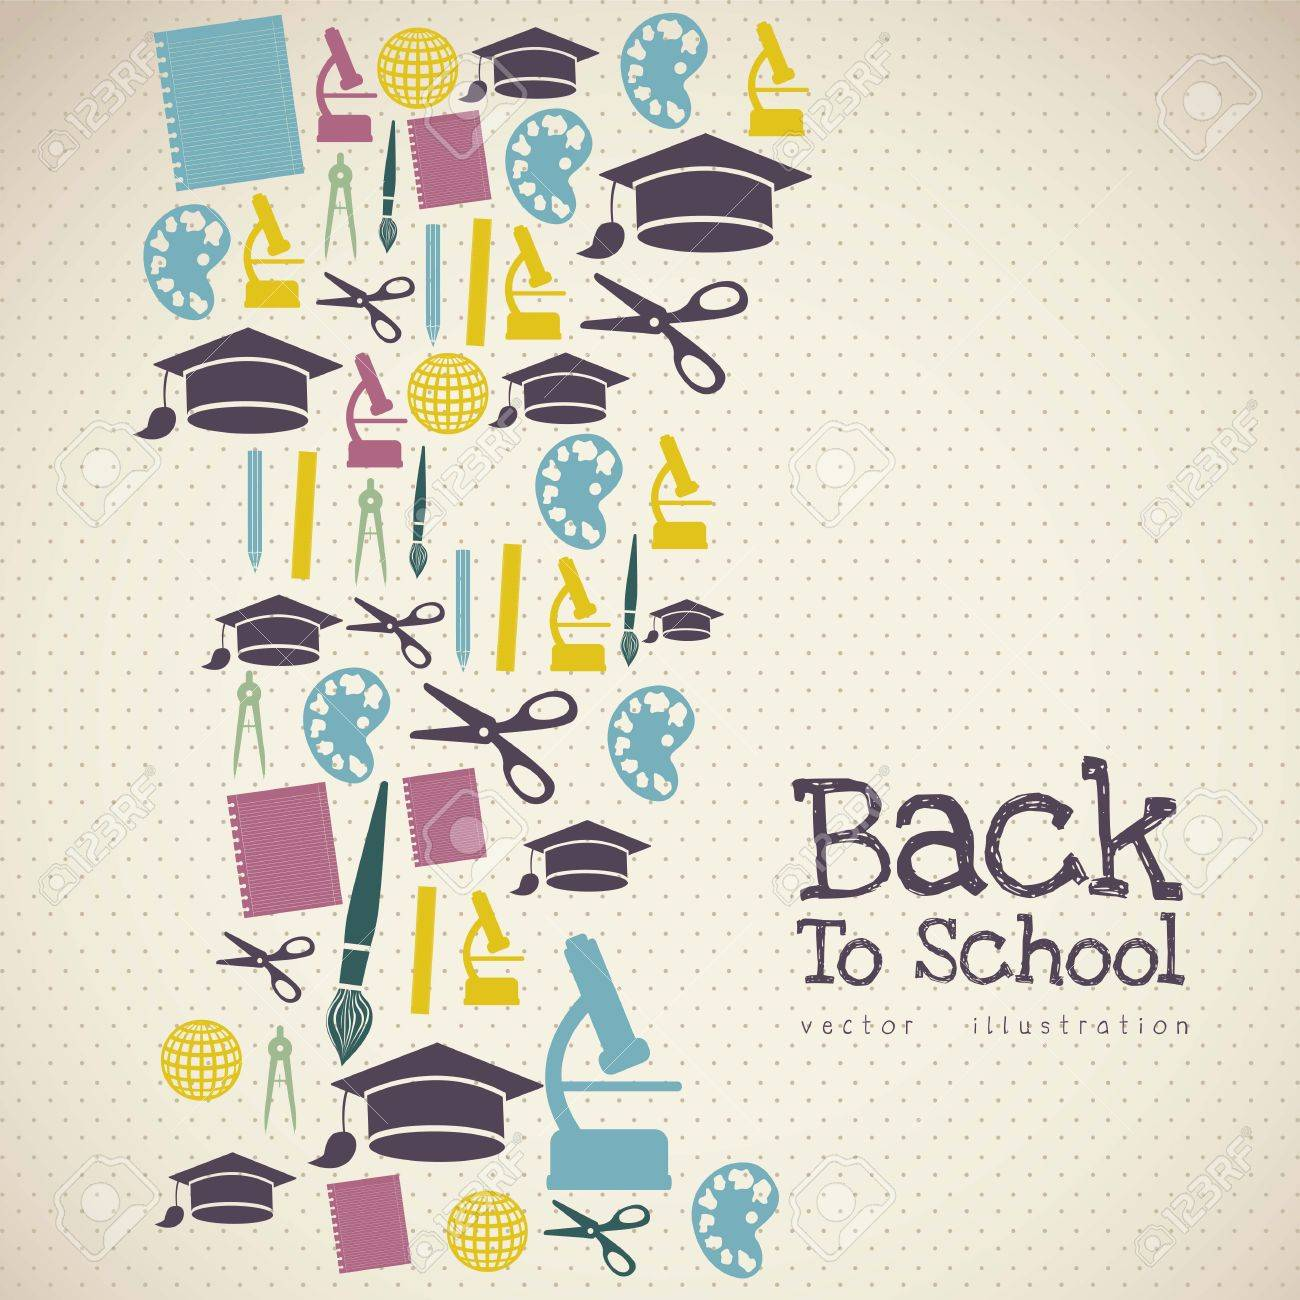 Illustration of school icons, student icons, back to class. - 16126435